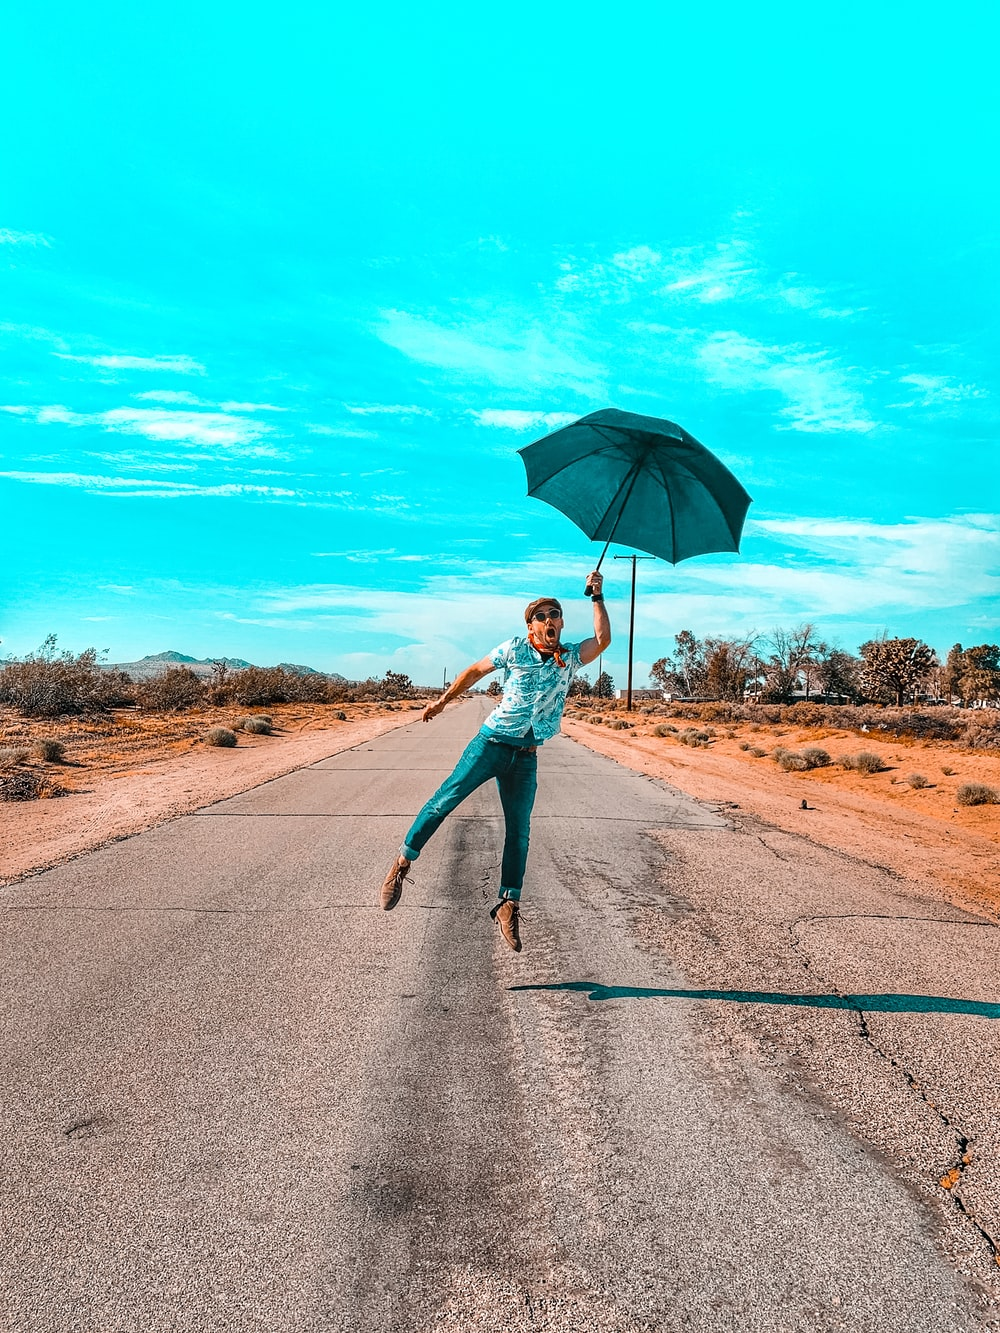 woman in teal long sleeve shirt and blue denim jeans holding umbrella walking on road during